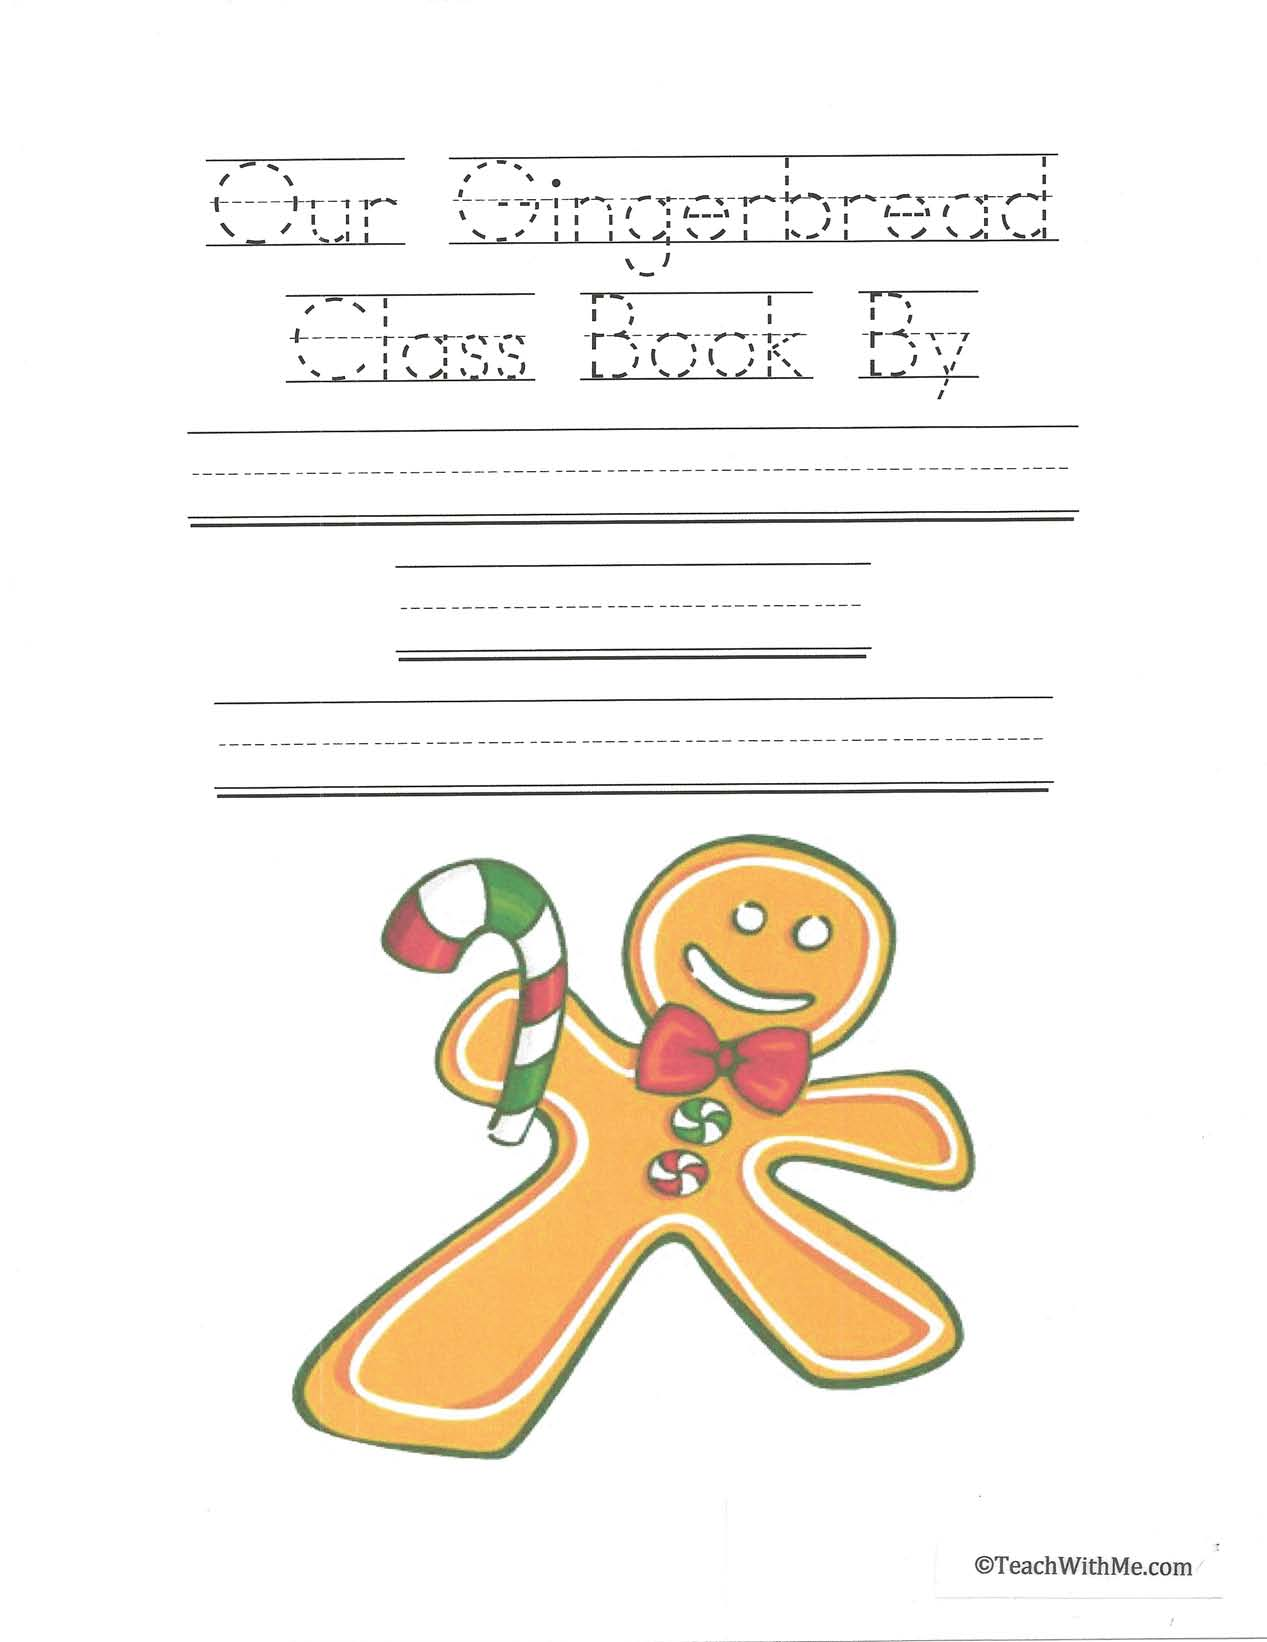 December writing prompts, gingerbread writing prompts, mitten writing prompts, activities to go with The Mitten, mitten activities, activities to go with the story The Gingerbread Man, writing class books, class books, writing prompts,